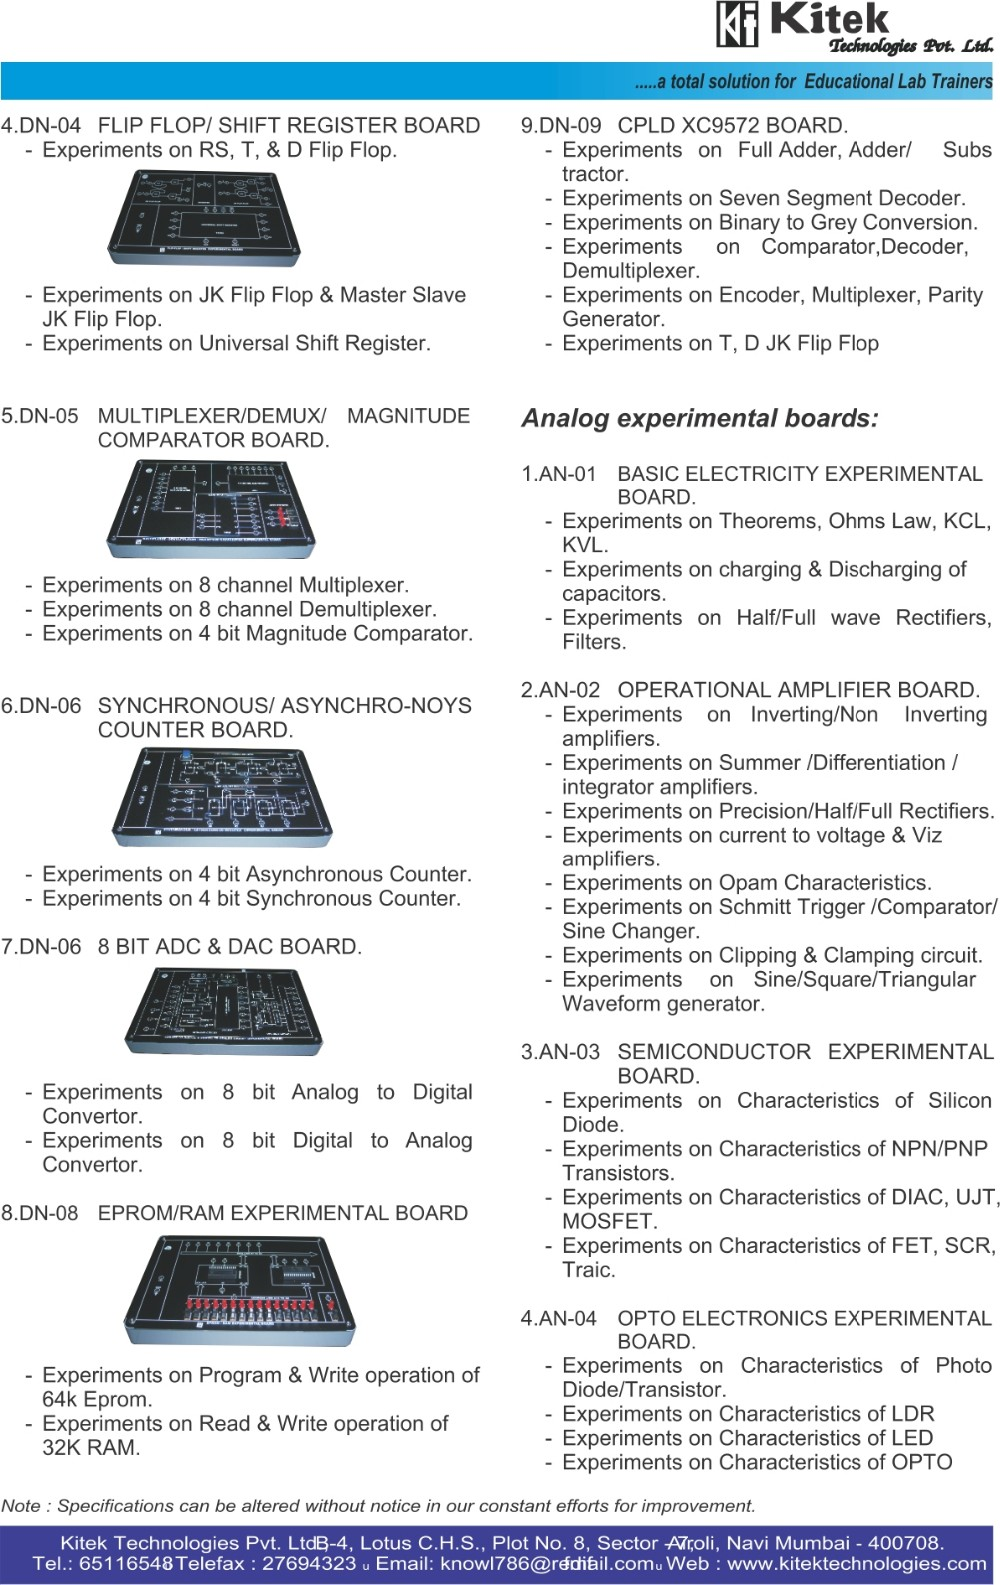 Perfect Operation Of Ldr Mold - Electrical Diagram Ideas - piotomar.info